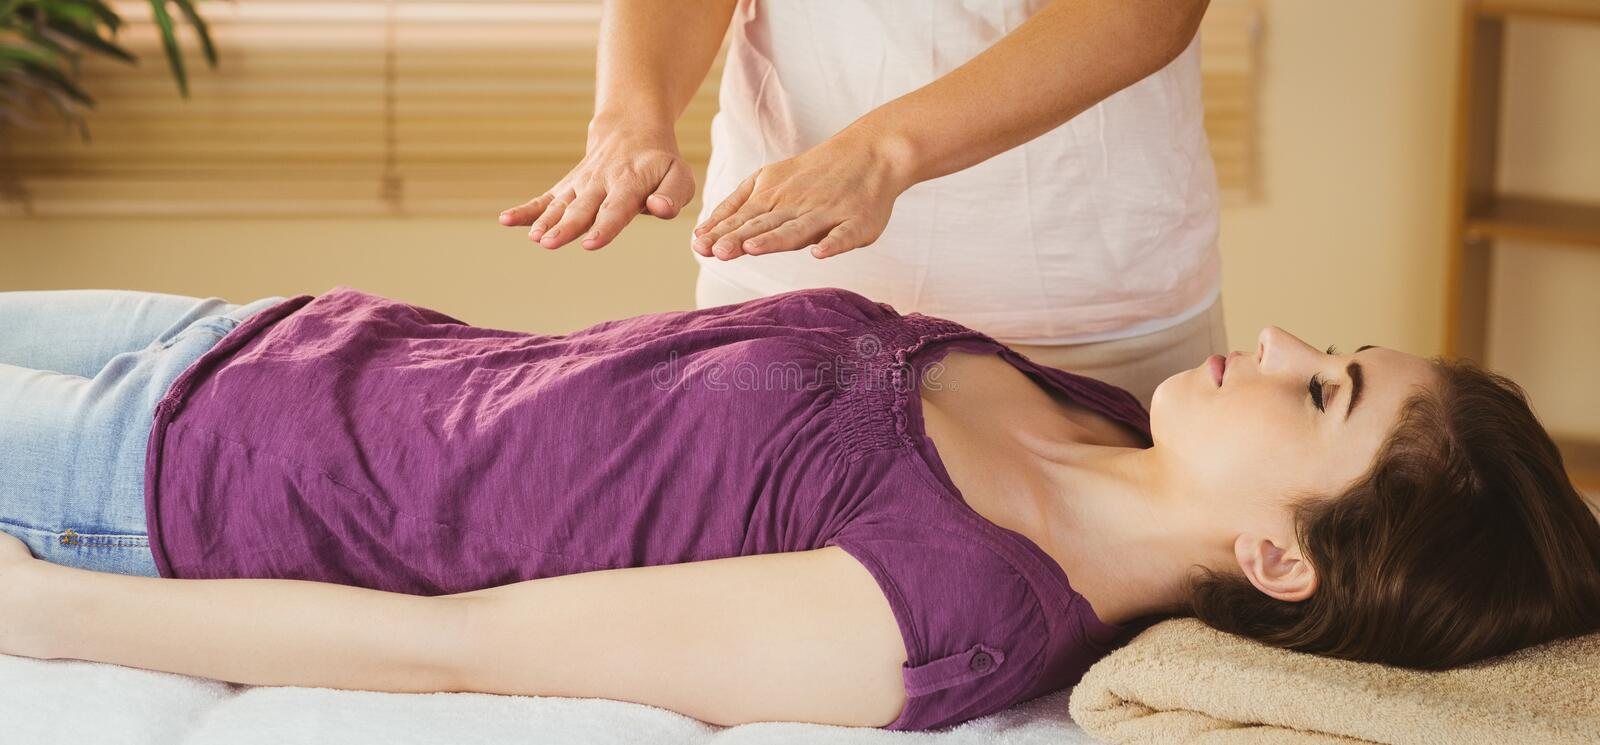 Young woman having a reiki treatment royalty free stock photos